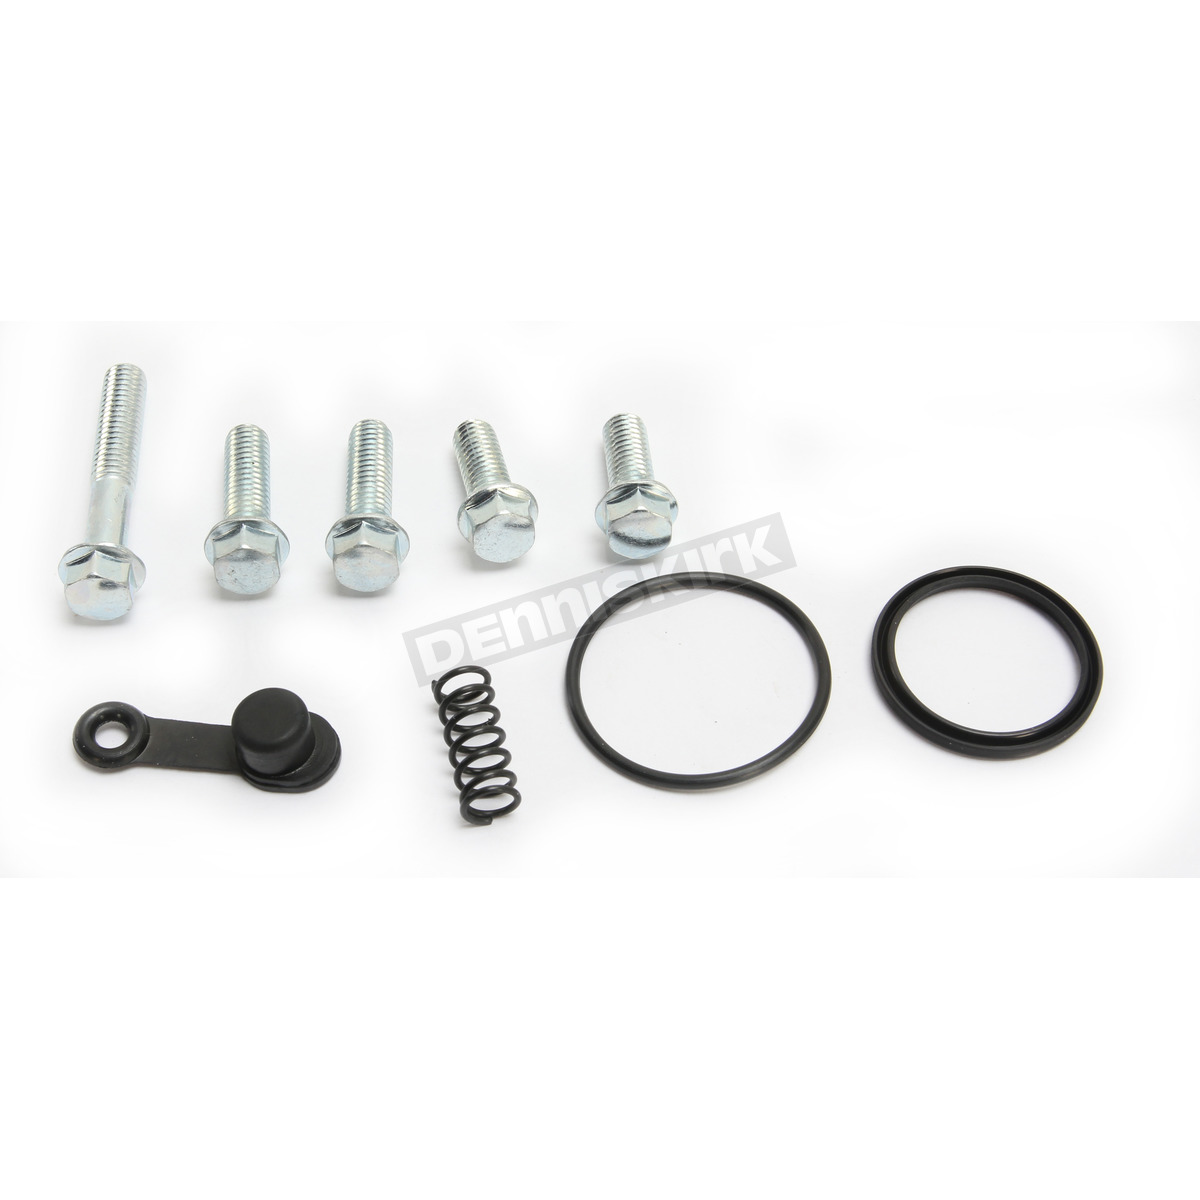 KTM SX250  Clutch Slave Cylinder Repair Rebuild Kit 2000 to 2005 Models